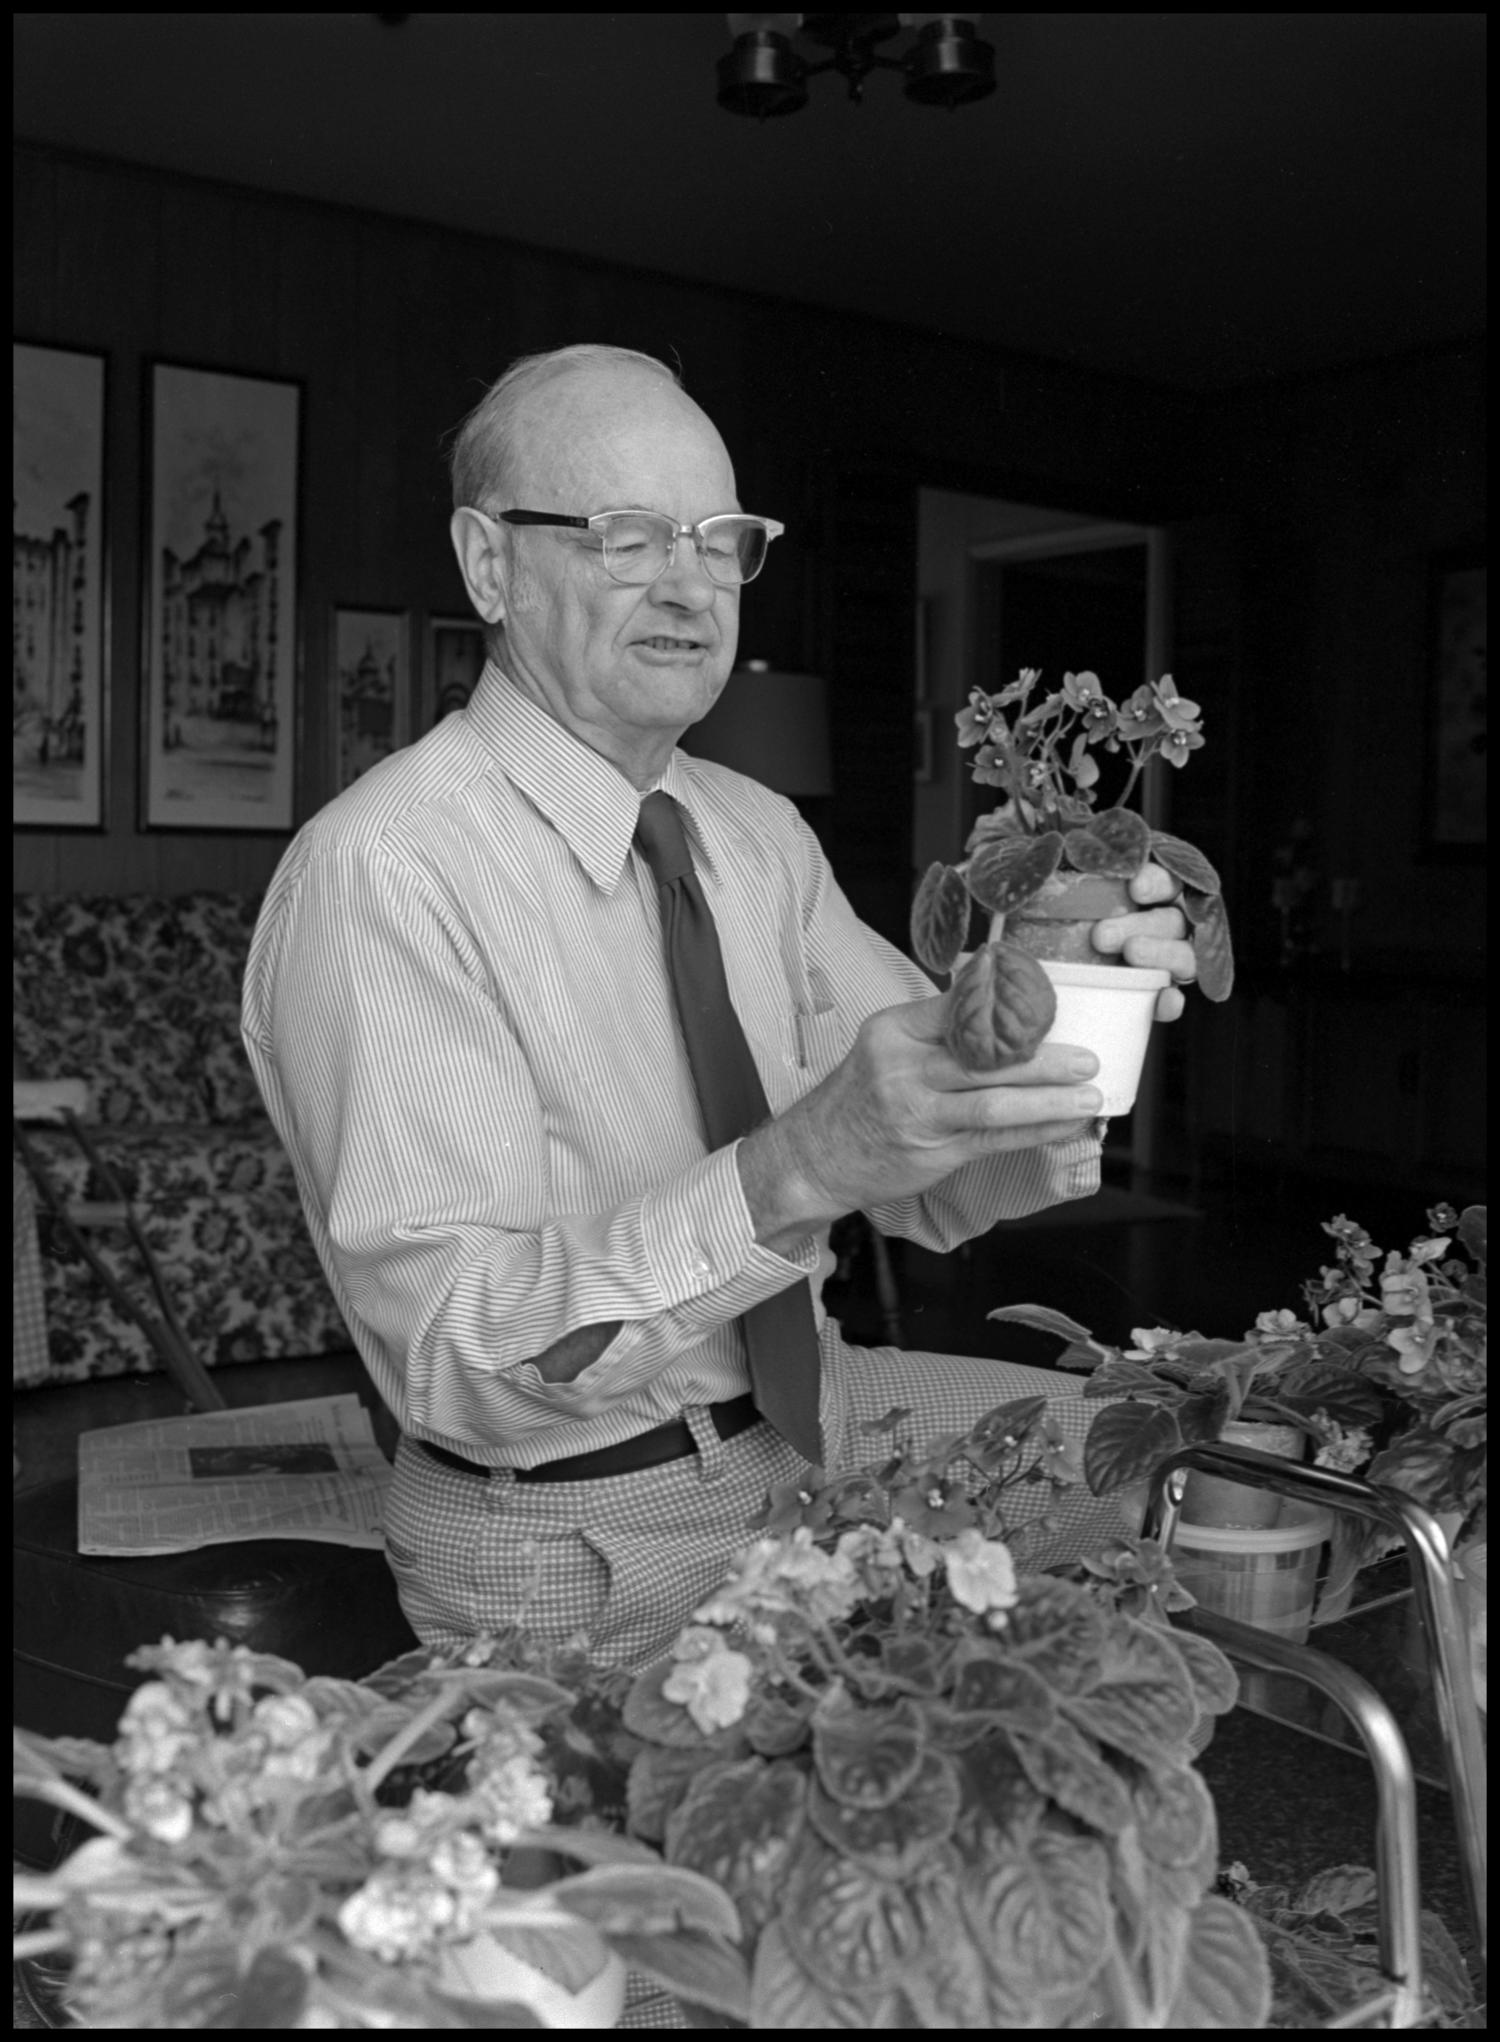 [Garland Brookshear holding pansies and new pot], Photograph of Garland Brookshear, a member of the Management faculty at NTSU, holding a potted plant, that appears to be pansies, next to a larger pot. He is being photographed for his retirement.,